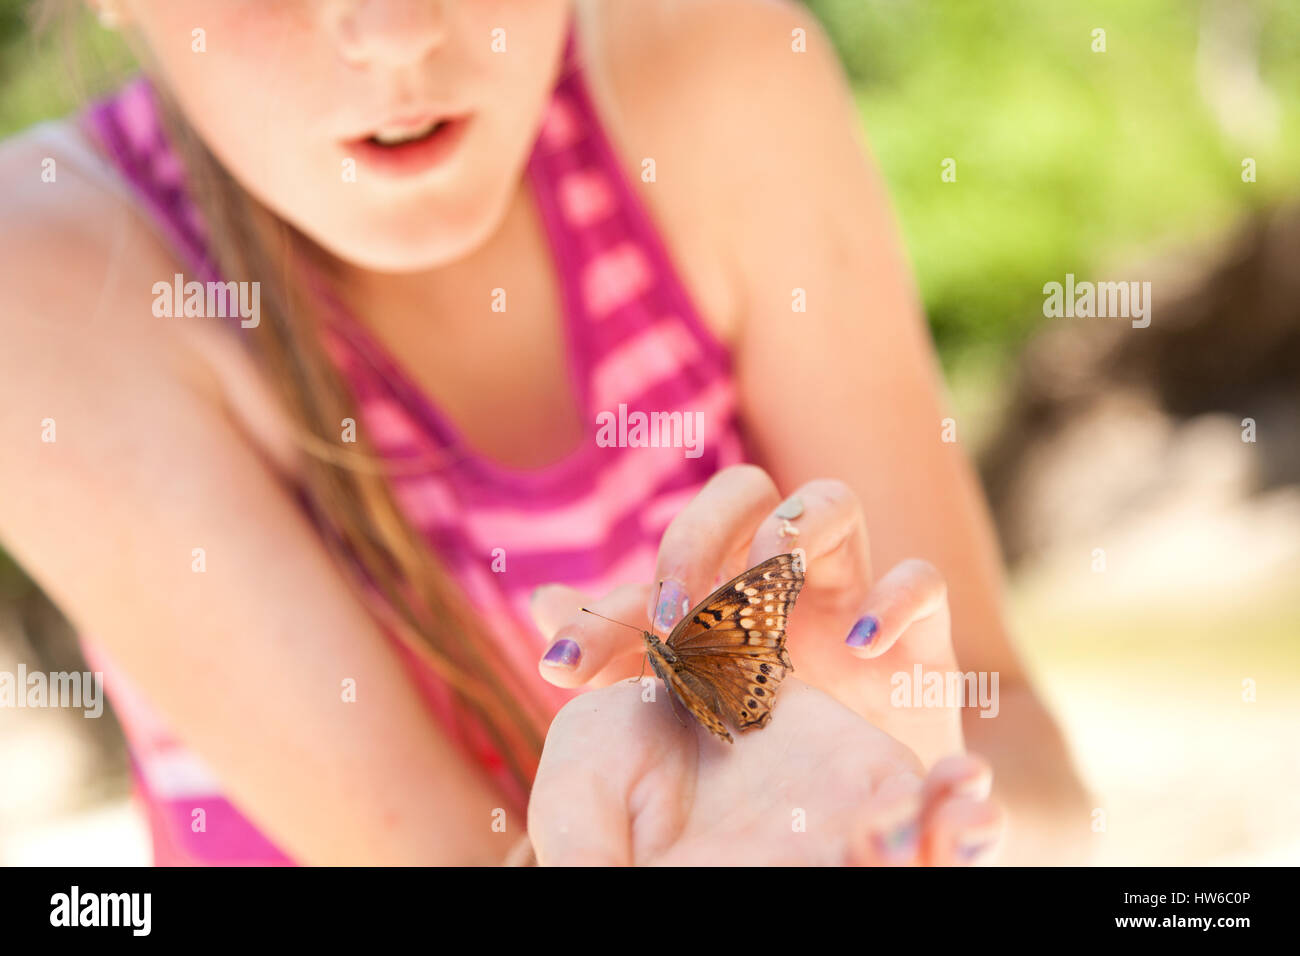 Girl with butterfly in hand - Stock Image